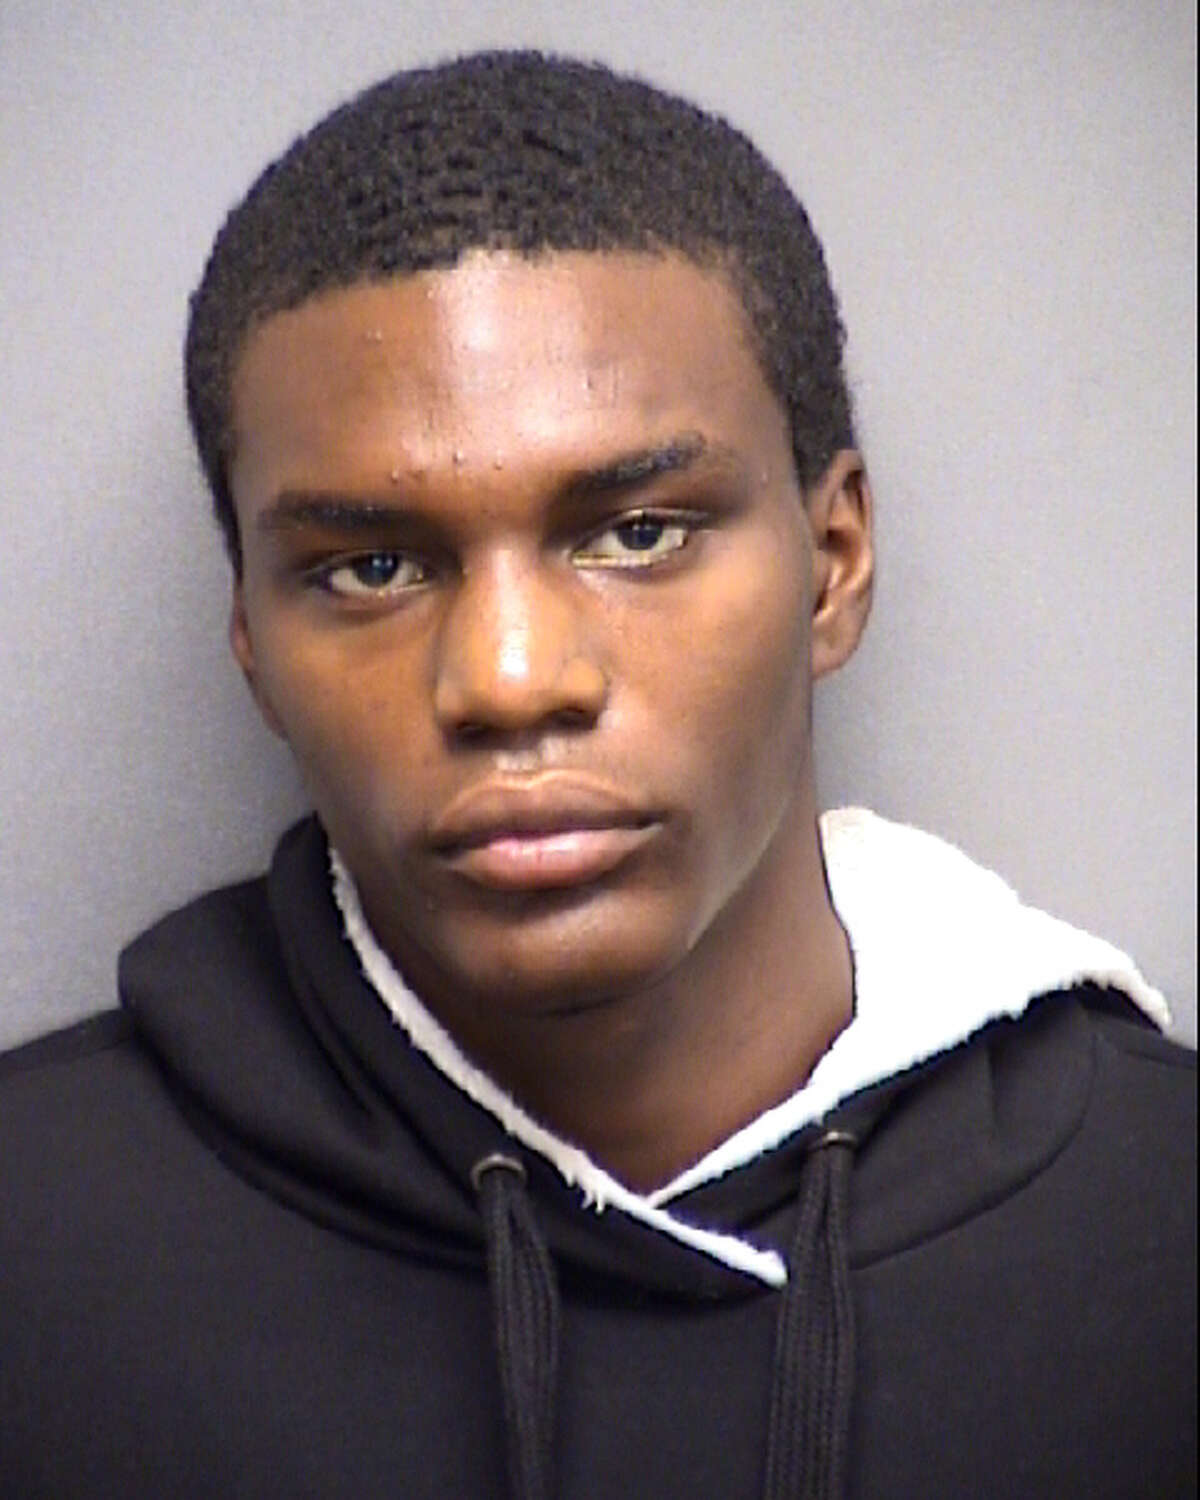 Johntavion Sounders, 18, was charged with capital murder.